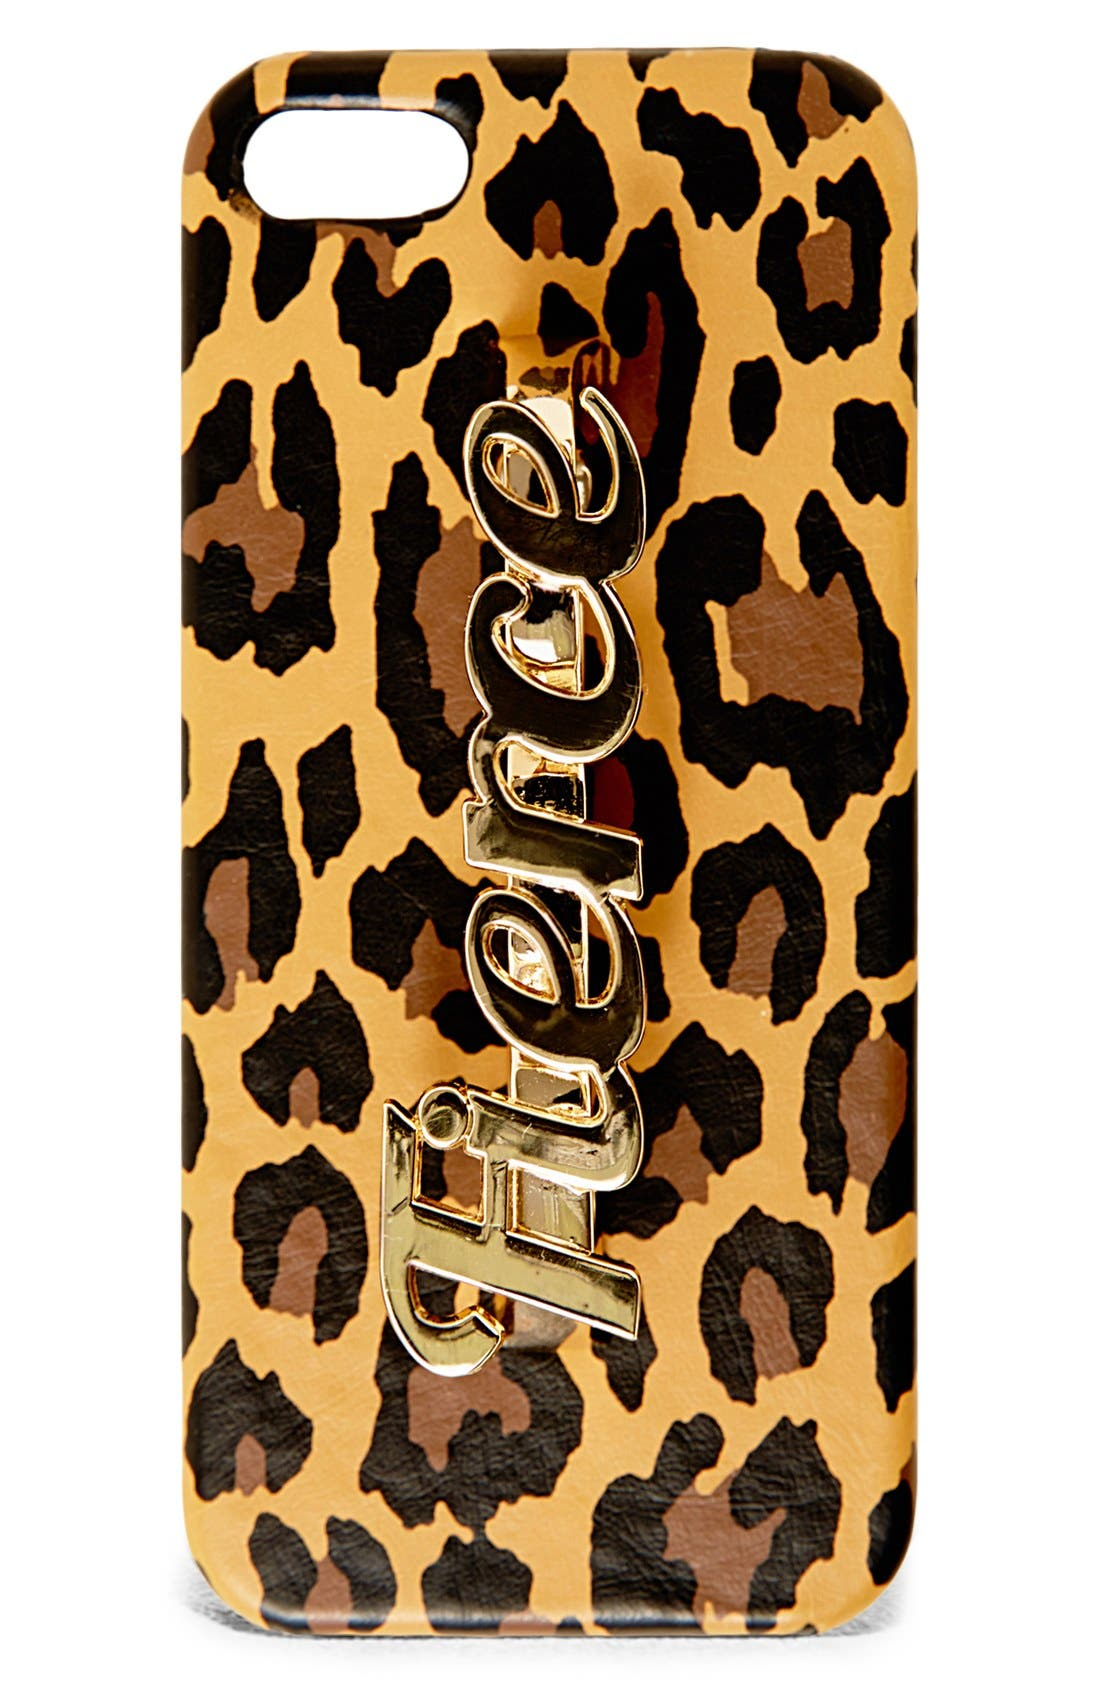 Alternate Image 1 Selected - Steve Madden 'Fierce' iPhone 5 & 5s Case